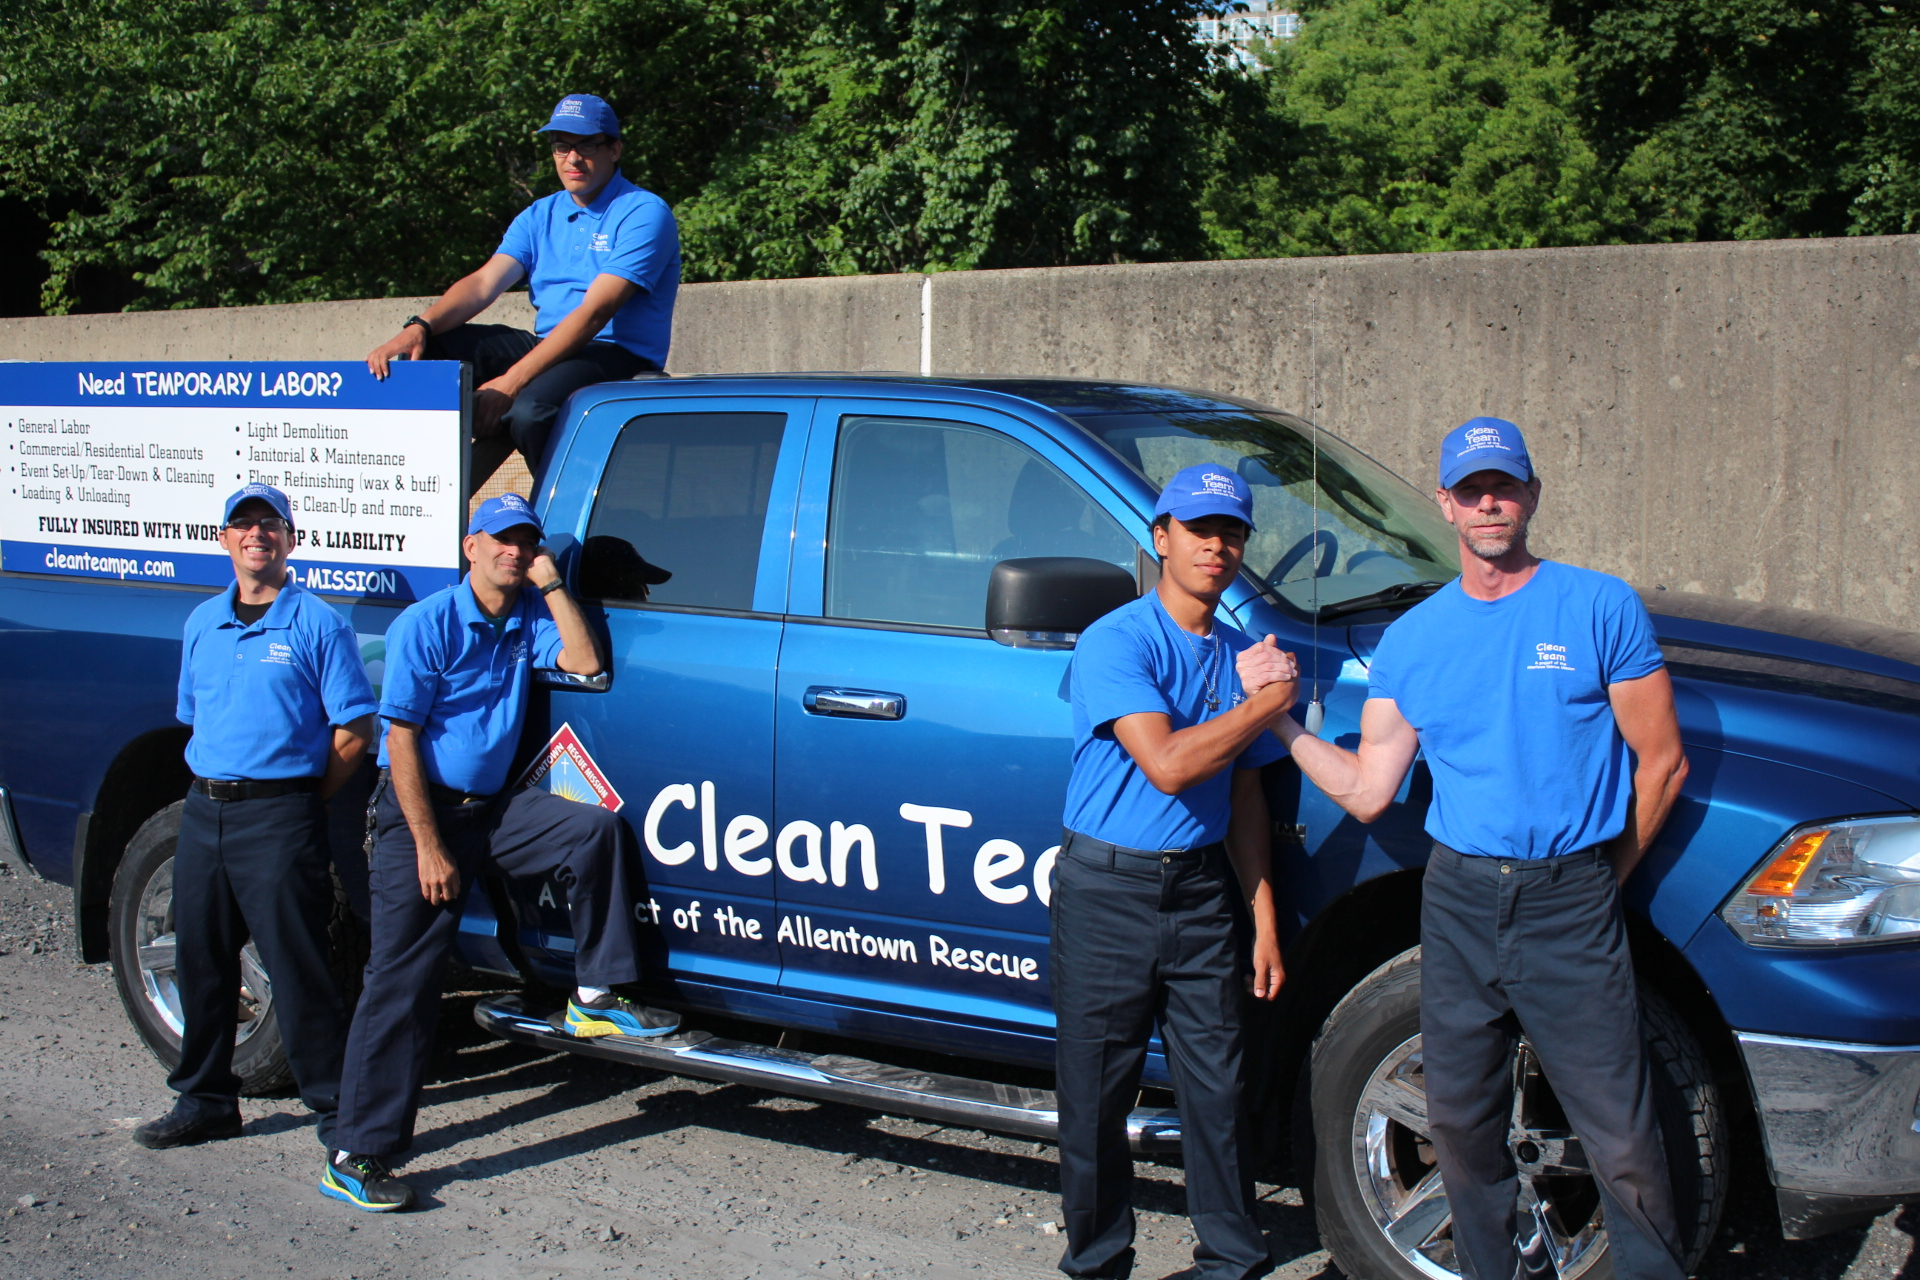 Cleaning Up Provides a Fresh Start - The Clean Team is a program of the Allentown Rescue Mission.